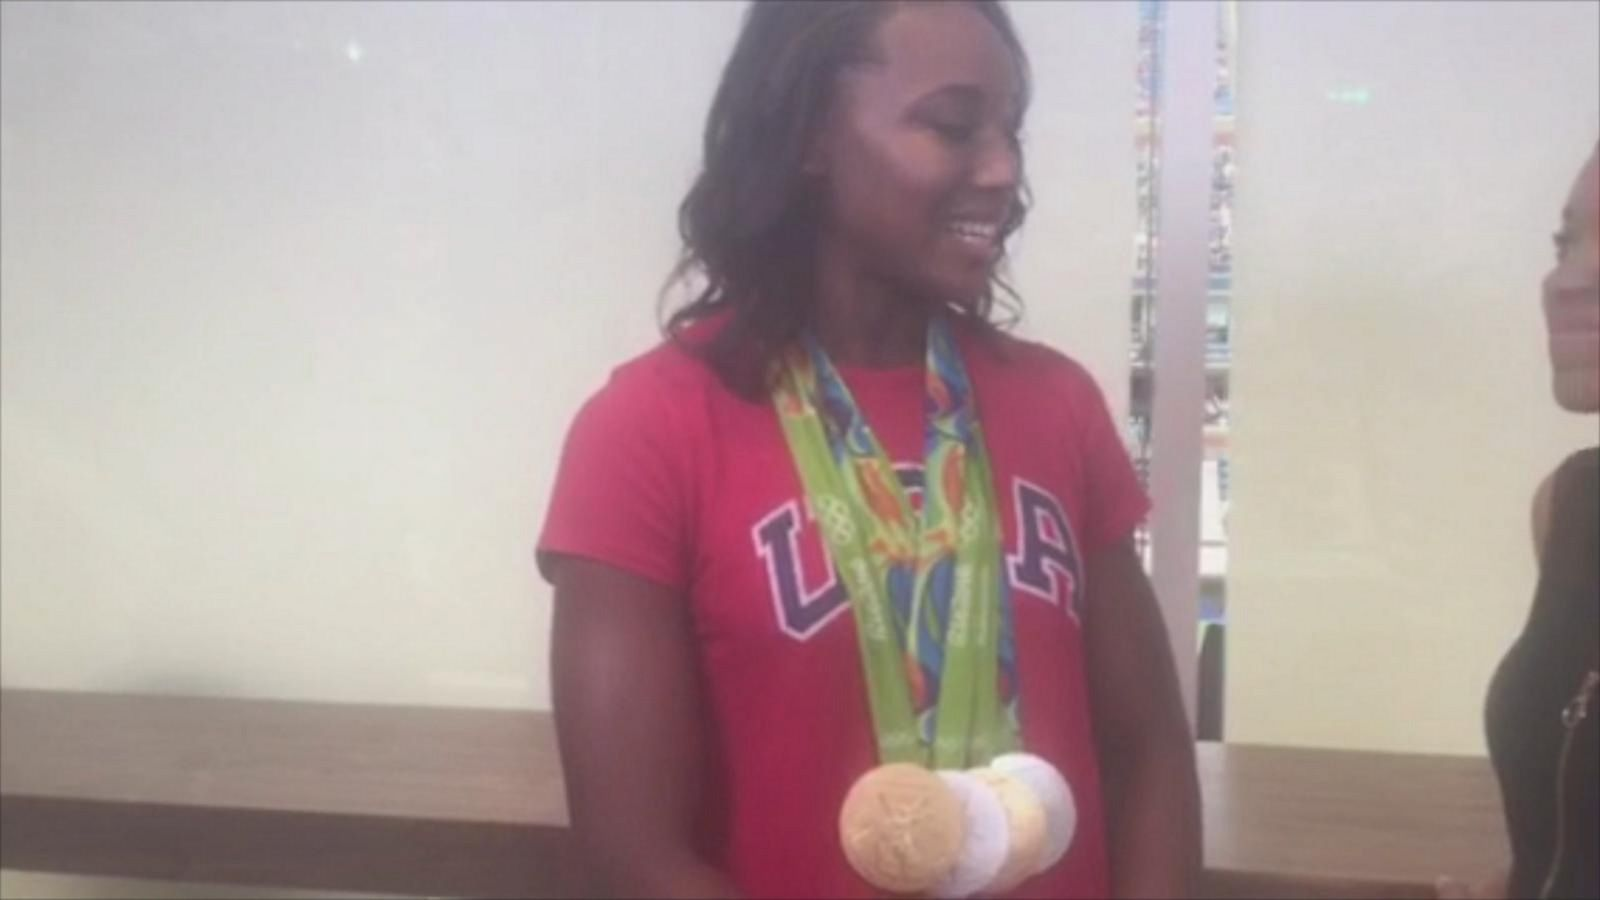 VIDEO: Simone Manuel Kicks off Arthur Ash Kids Day Ahead of U.S. Open